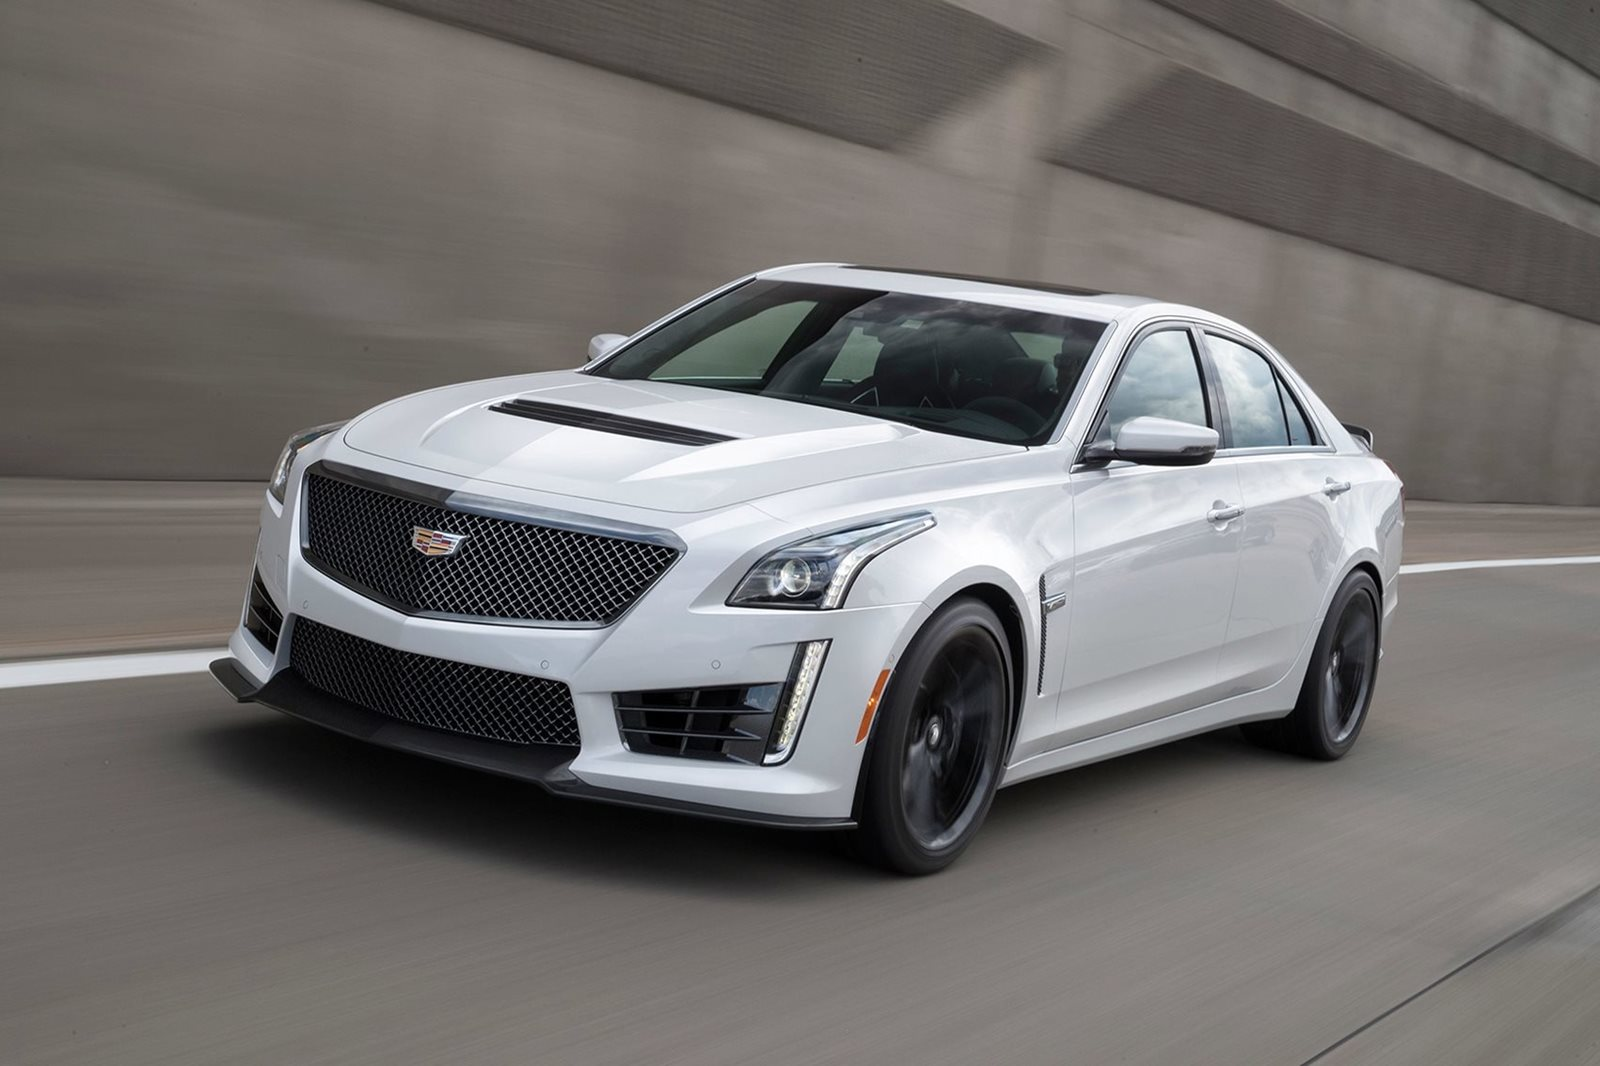 Cadillac Ats V Coupe >> 2018 Cadillac Ats V Coupe Review Trims Specs And Price Carbuzz